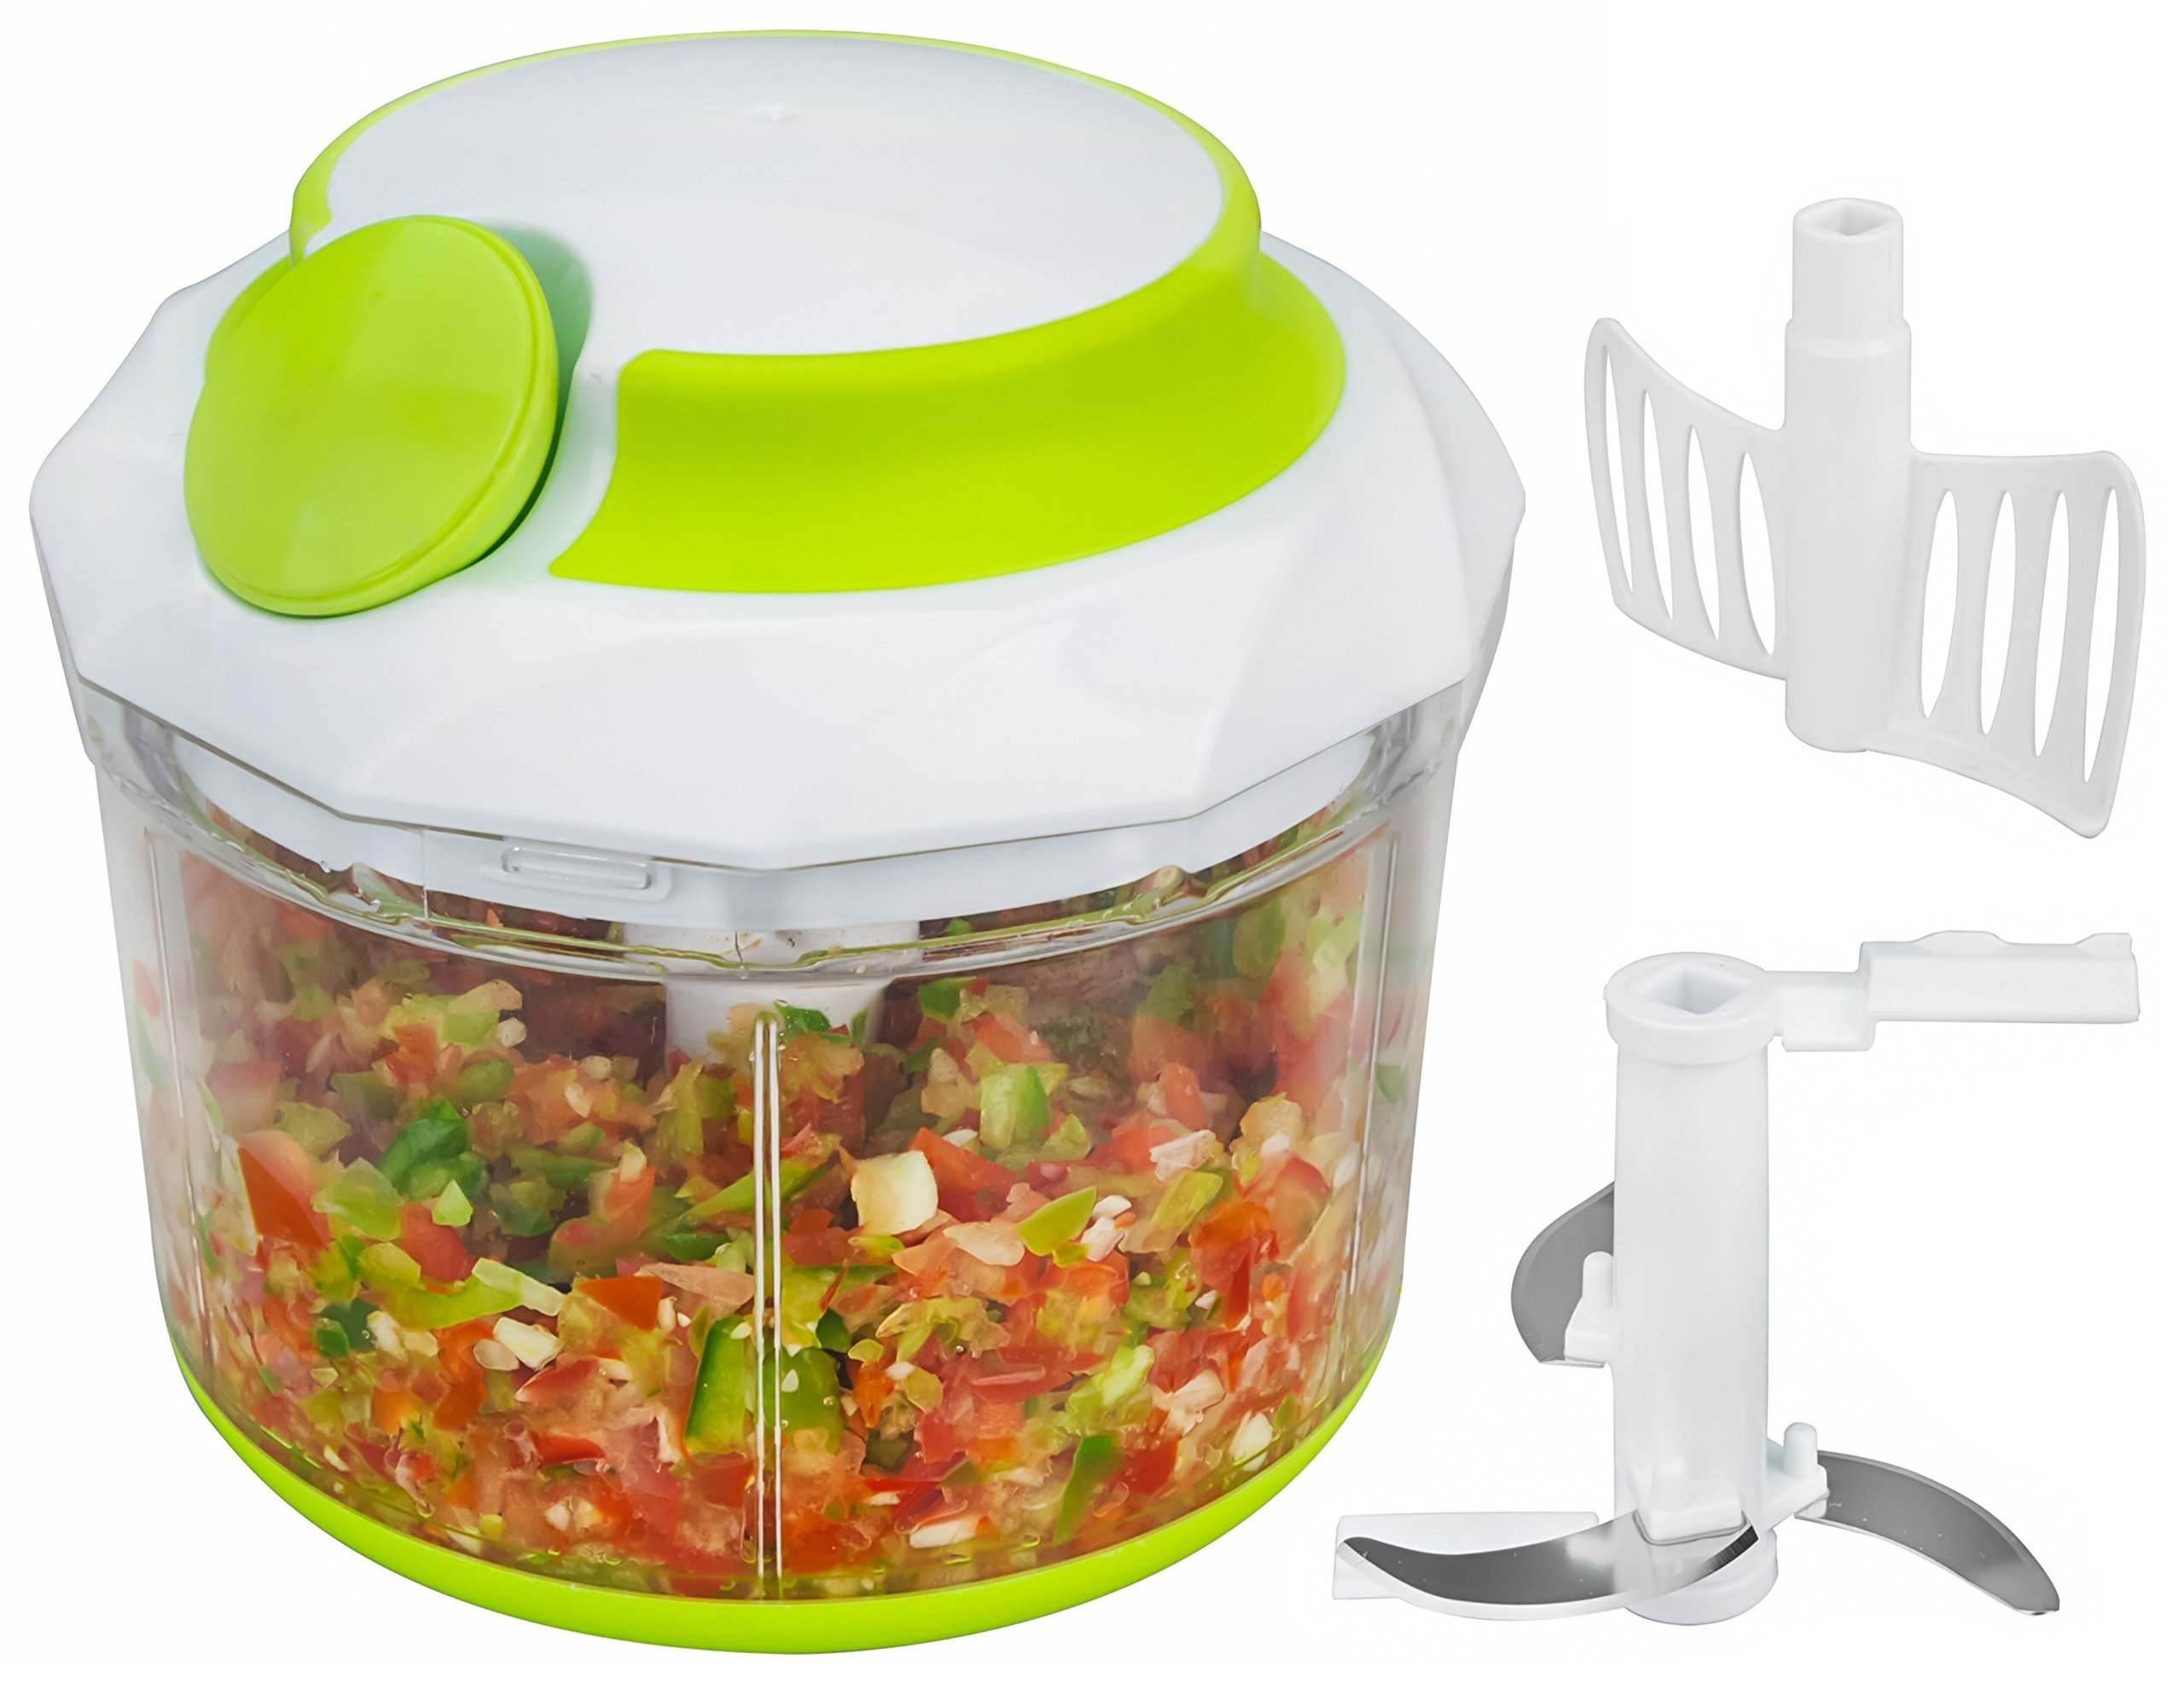 Brieftons QuickPull Food Chopper: Large 4-Cup Powerful Manual Hand Held Chopper/Mincer/Mixer/Blender to Chop Fruits, Vegetables, Nuts, Herbs, Onions for Salsa, Salad, Pesto, Coleslaw, Puree by Brieftons